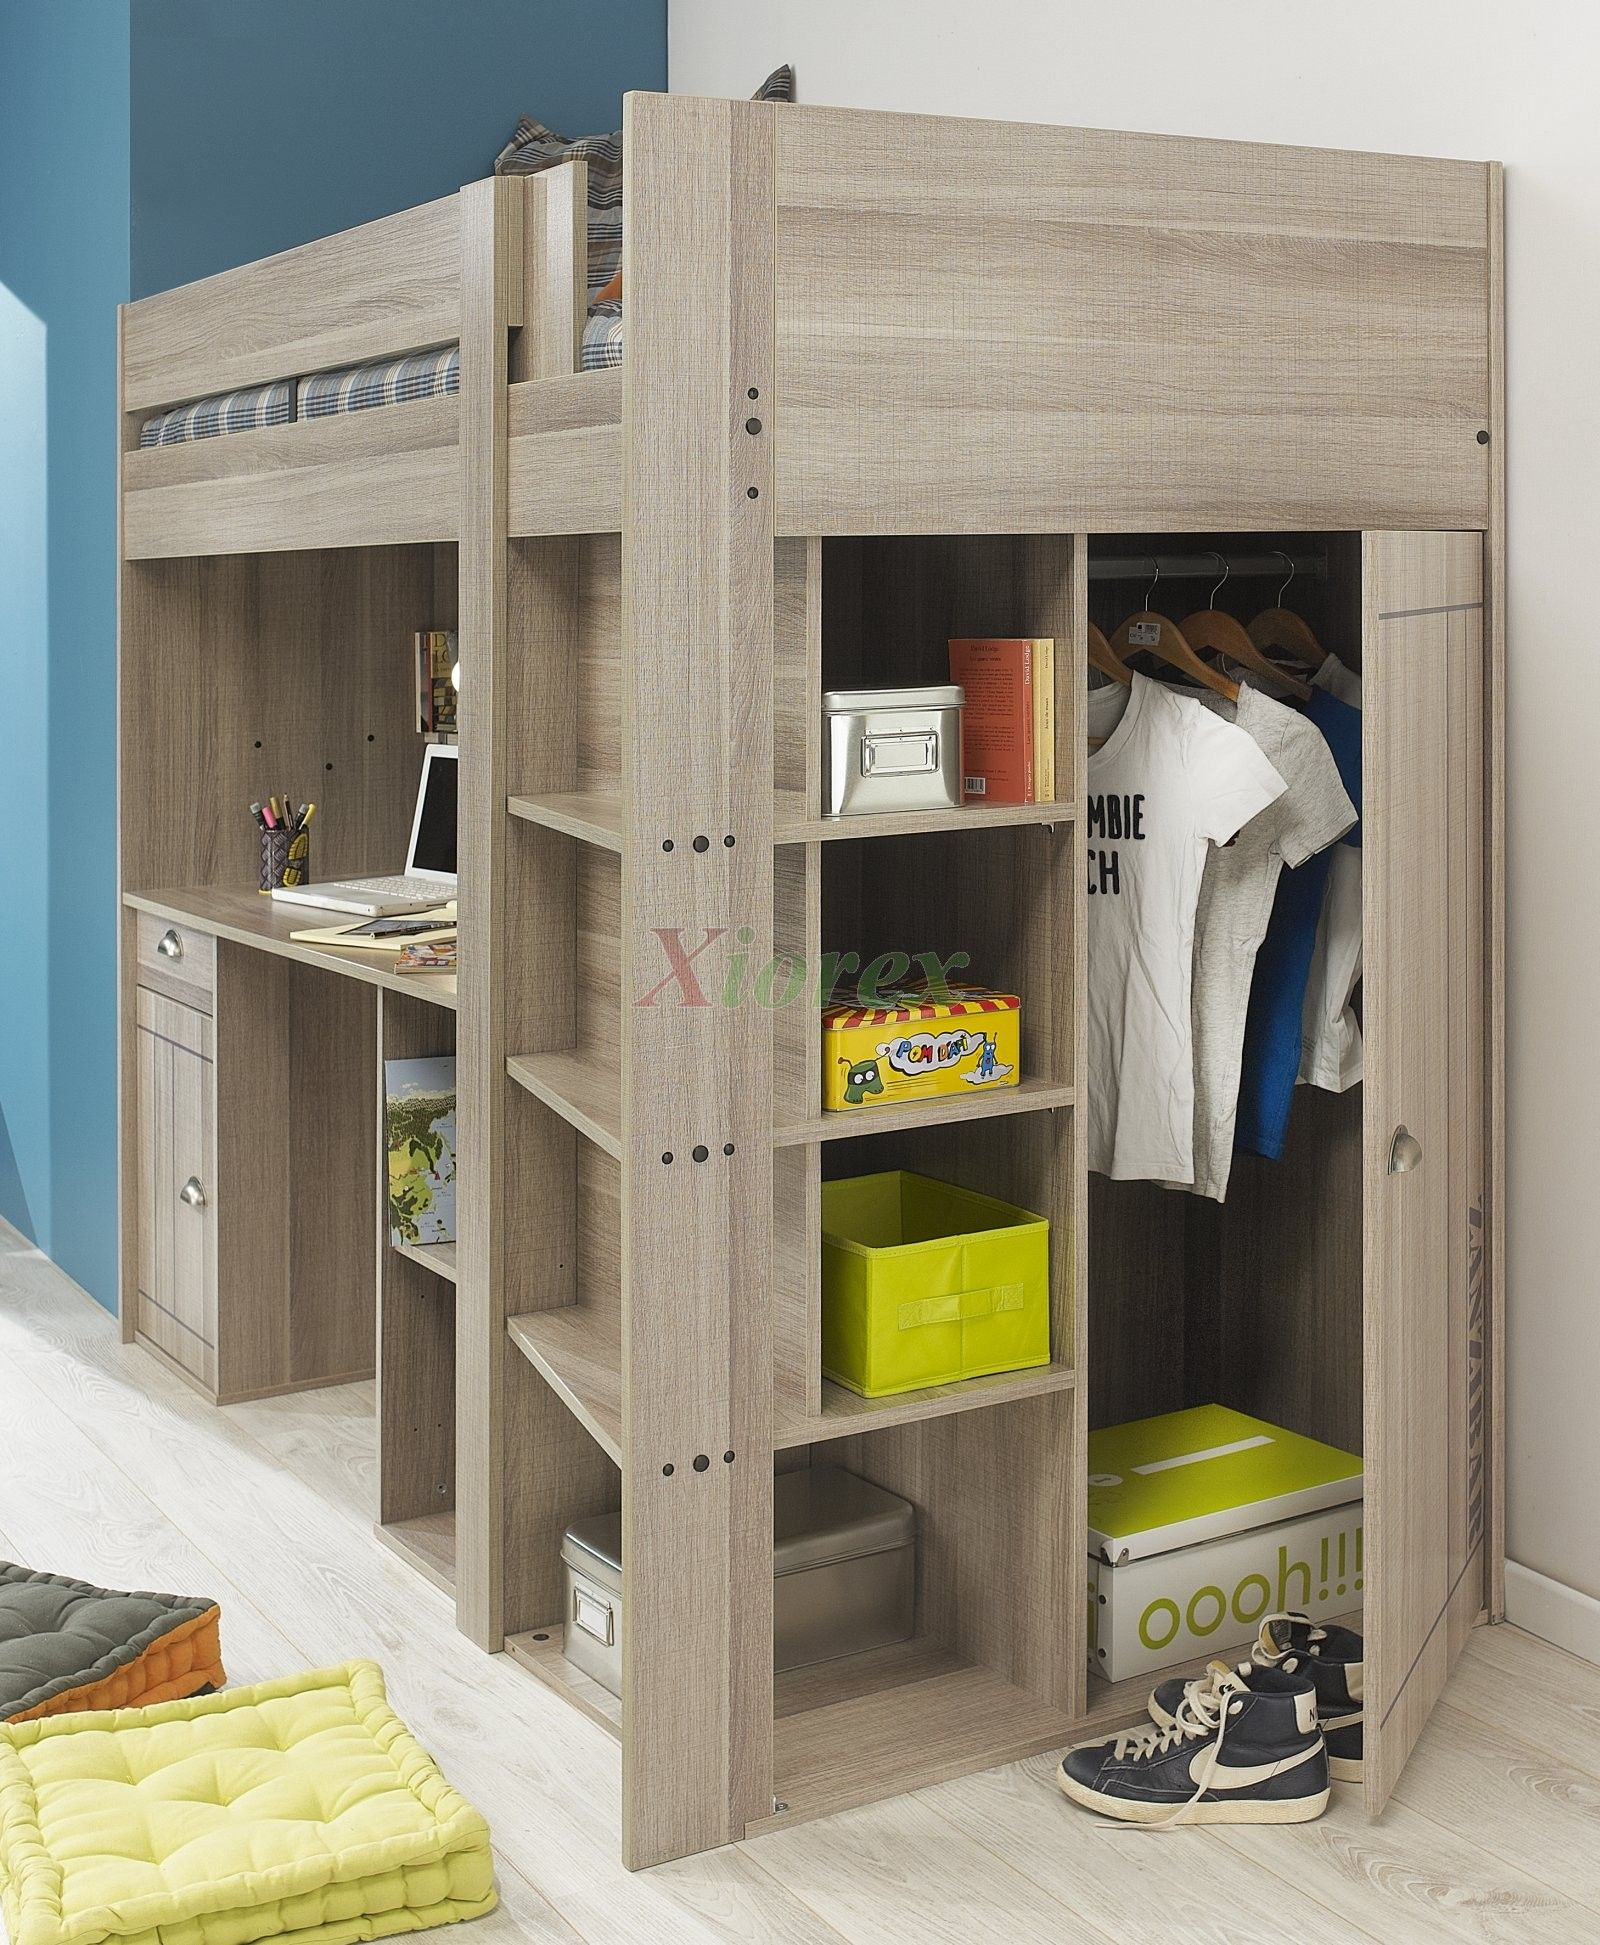 Bunk bed with desk for teenagers - Gami Largo Loft Beds For Teens Canada With Desk Closet Xiorex Gami Largo Teen